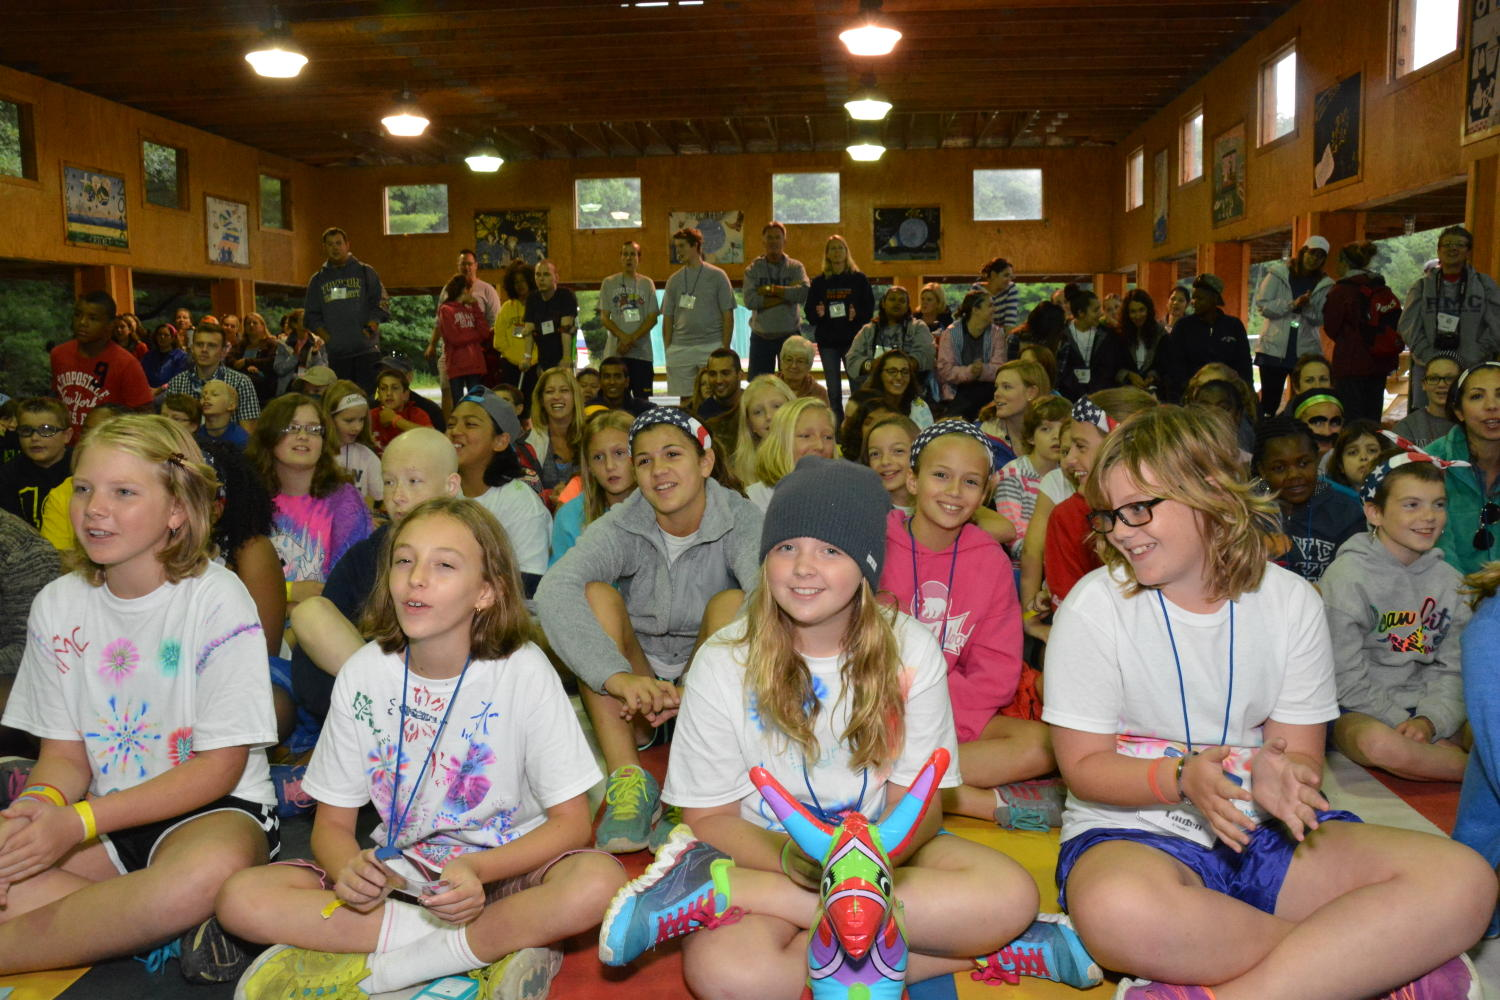 Ronald McDonald Camp at Camp Timber Tops, 2014